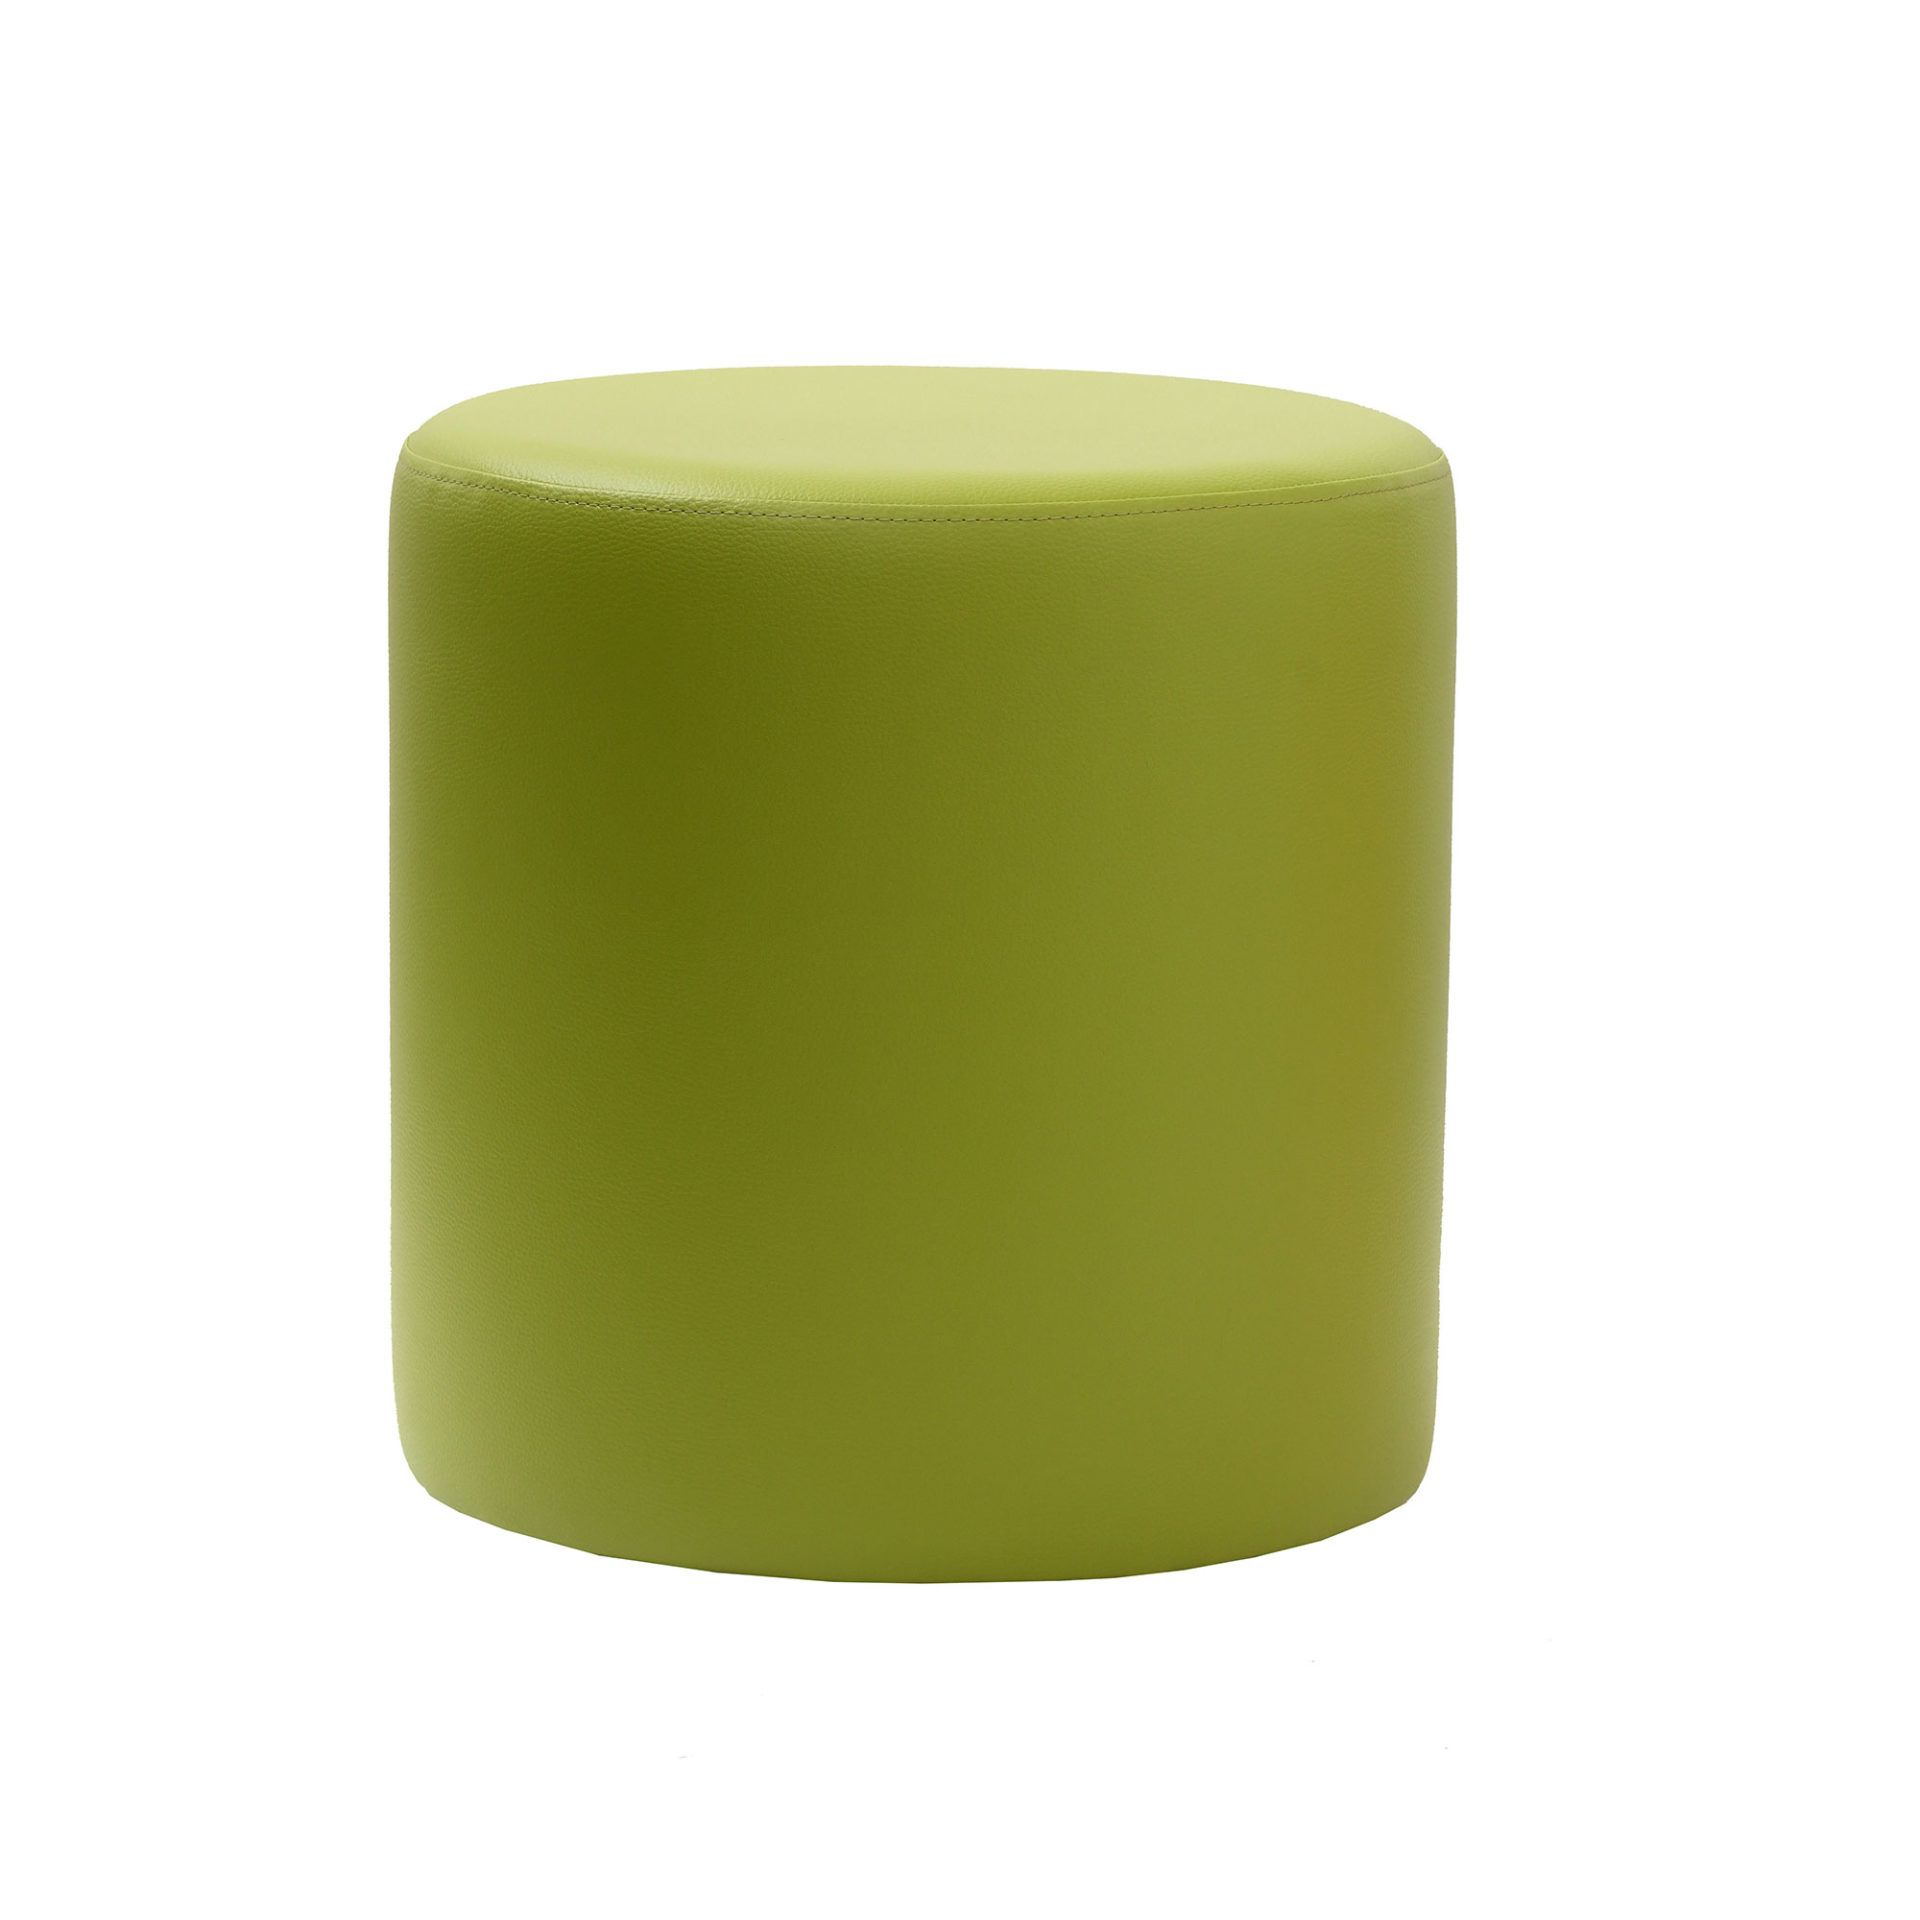 Ottoman Round - Green - Made In Europe